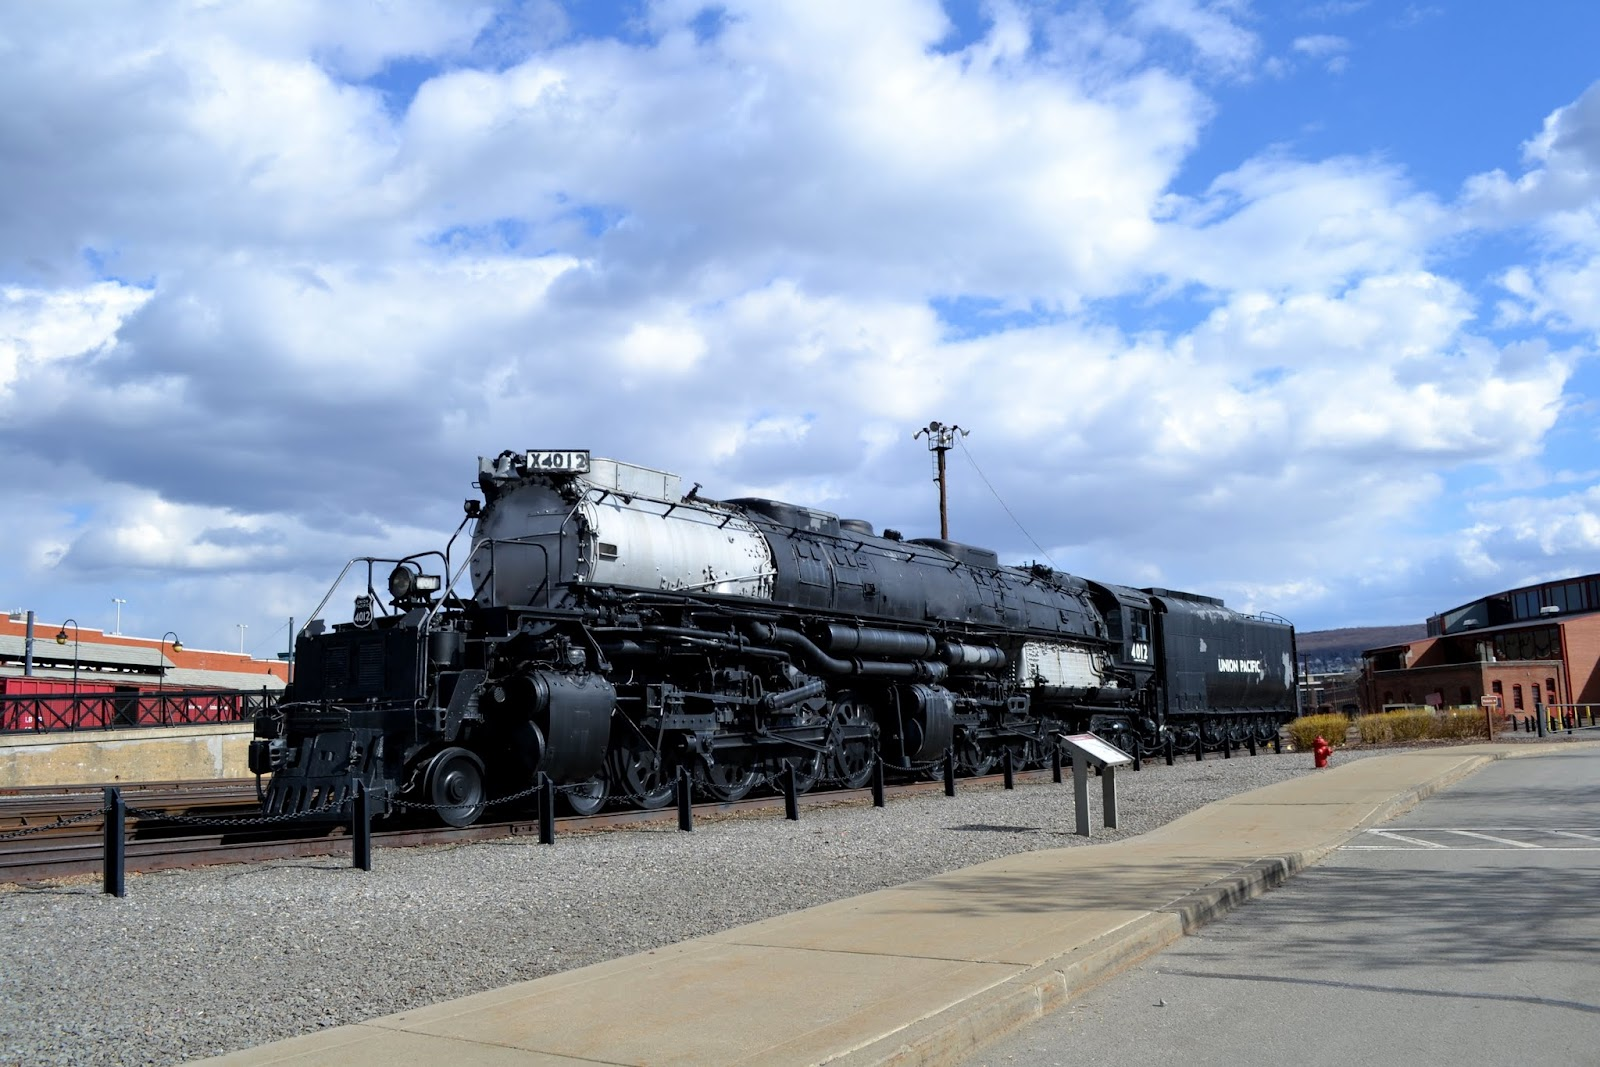 Стимтаун - музей паровозов, Скрэнтон, Пенсильвания(Steamtown National Historic Site, Scranton, PA)